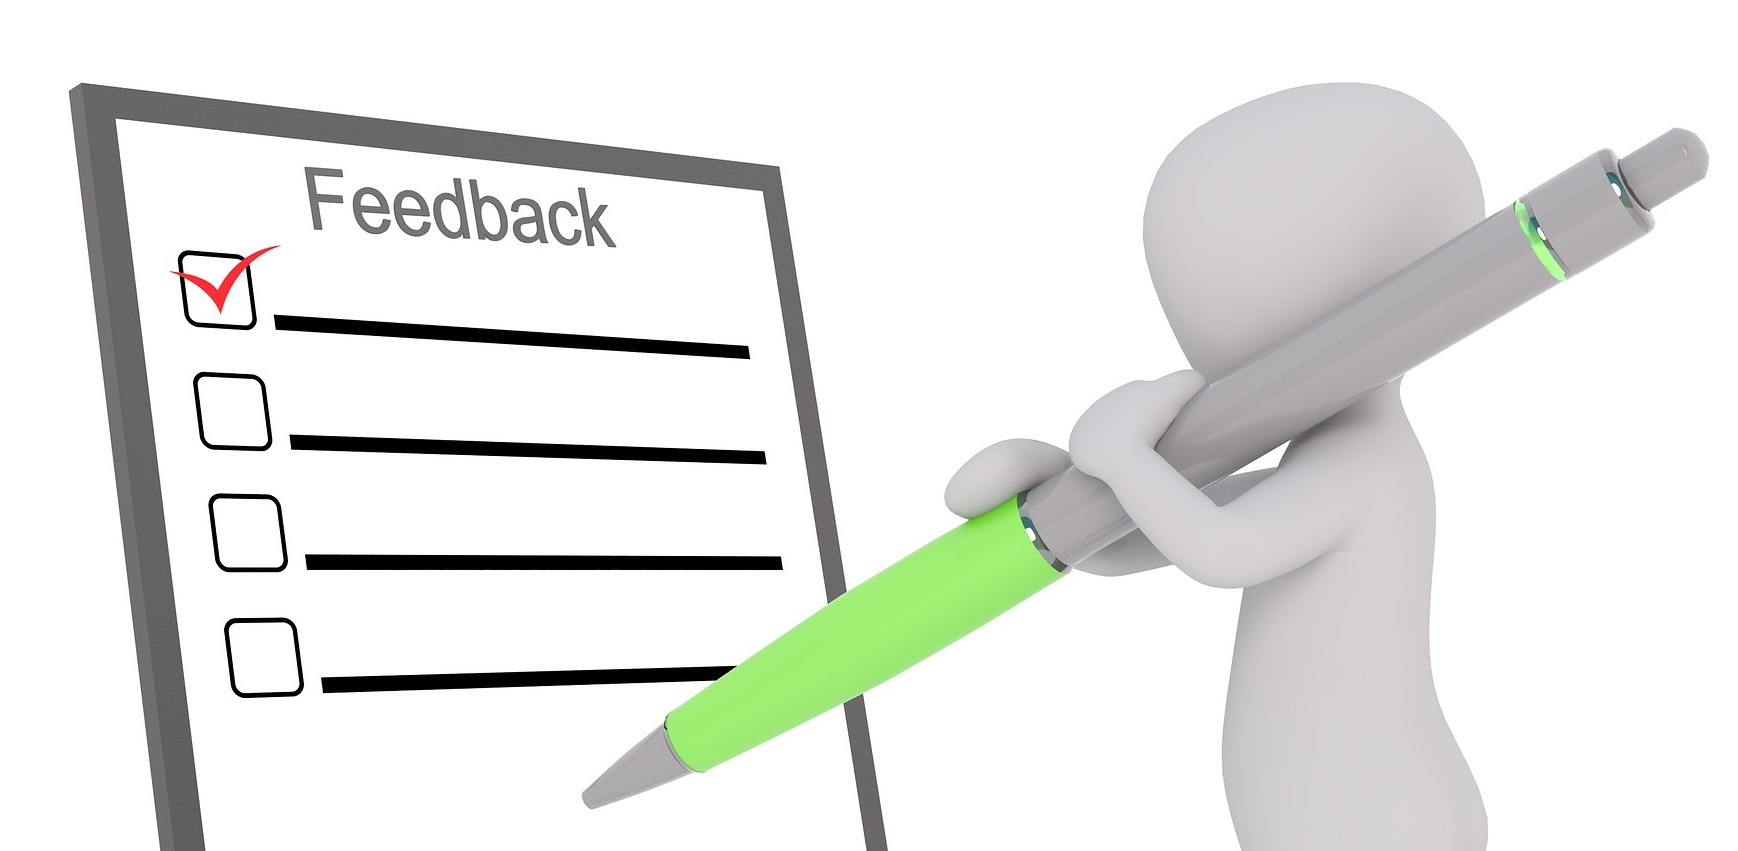 Review a document or policy